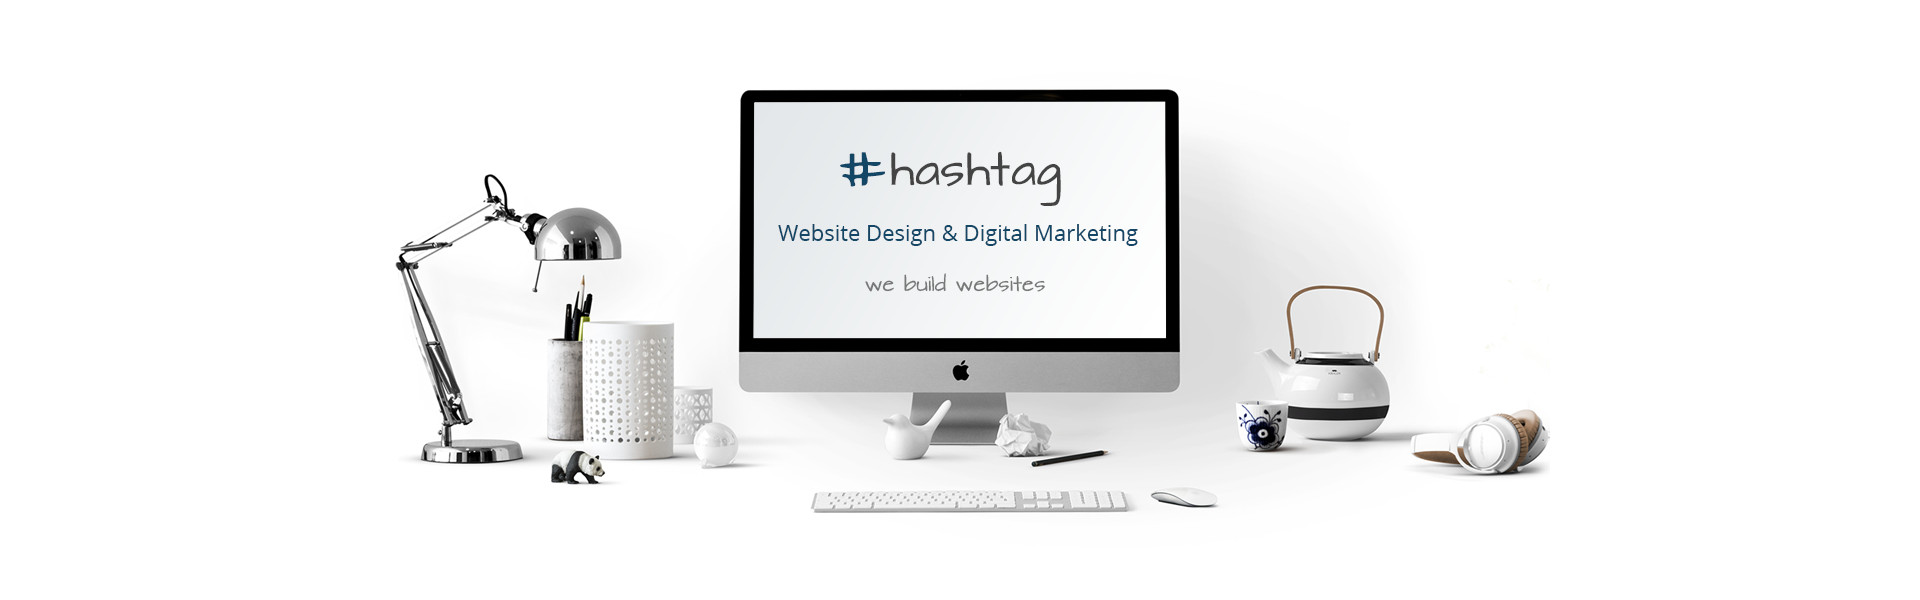 Hashtag - Website Design and Digital Marketing Agency Cork